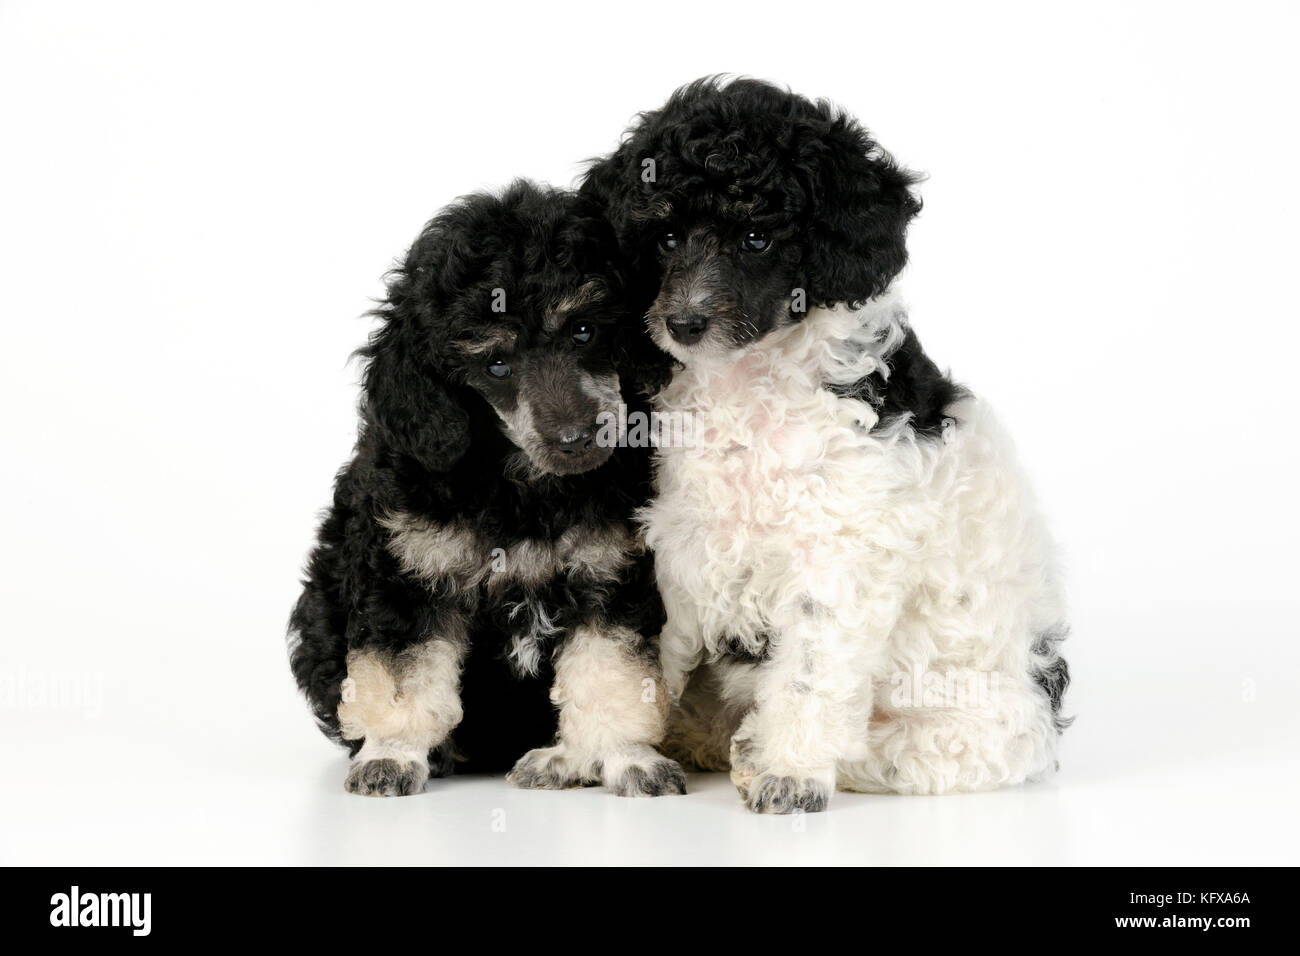 Dog. Toy poodles (party and phantom colour, 9 weeks old) - Stock Image